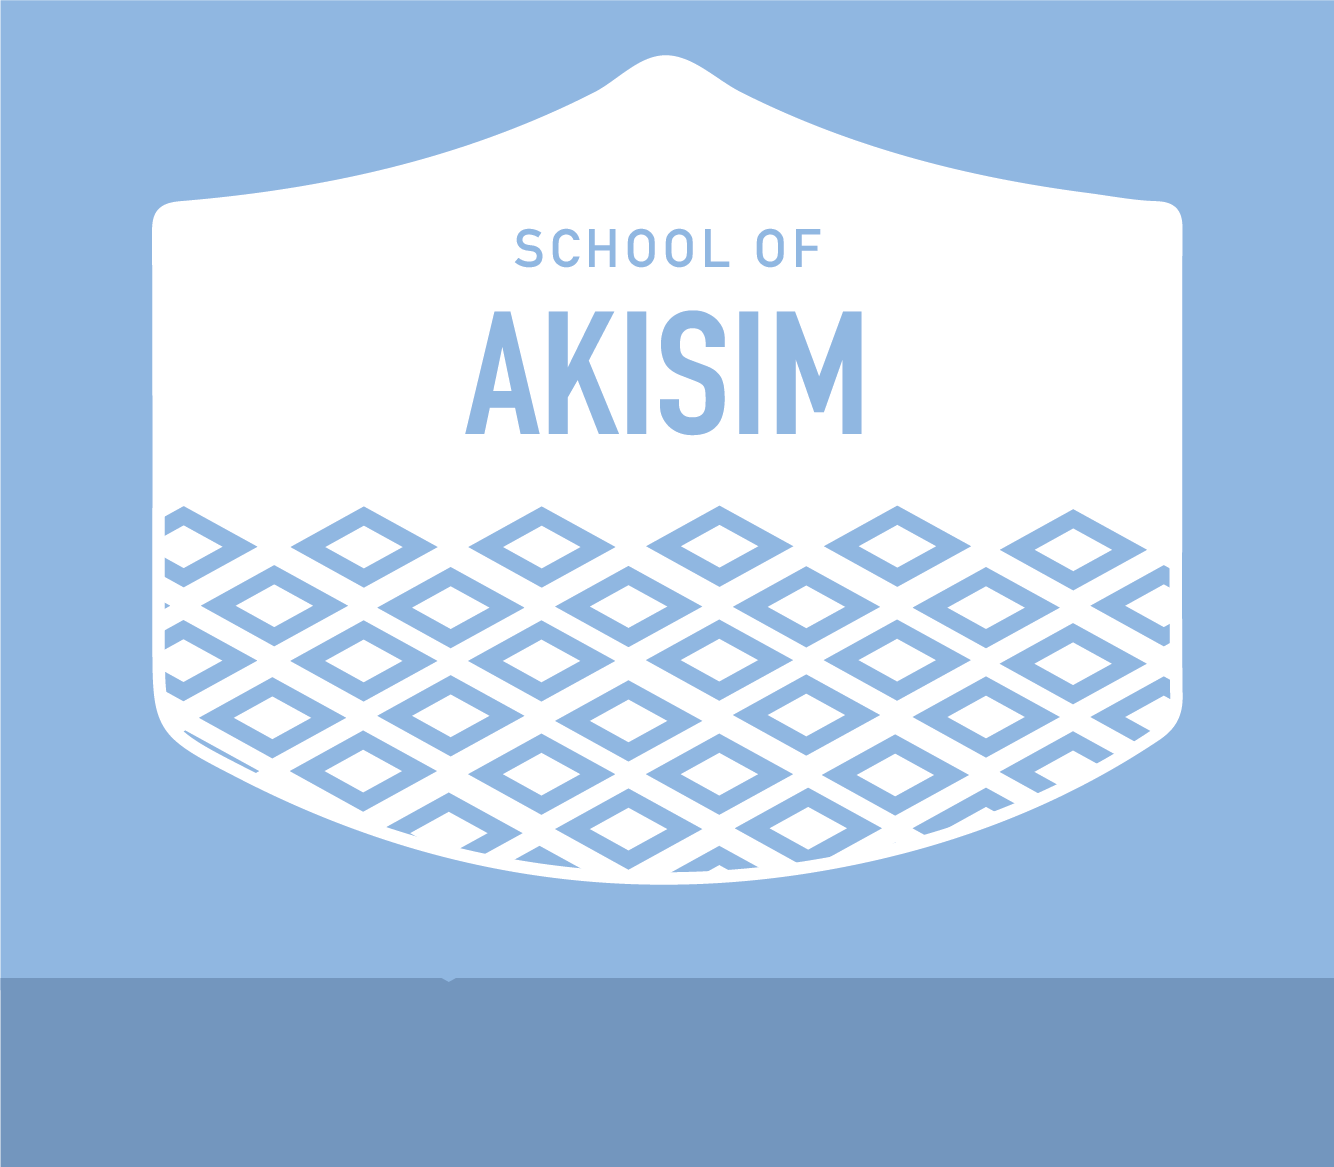 School of akisim